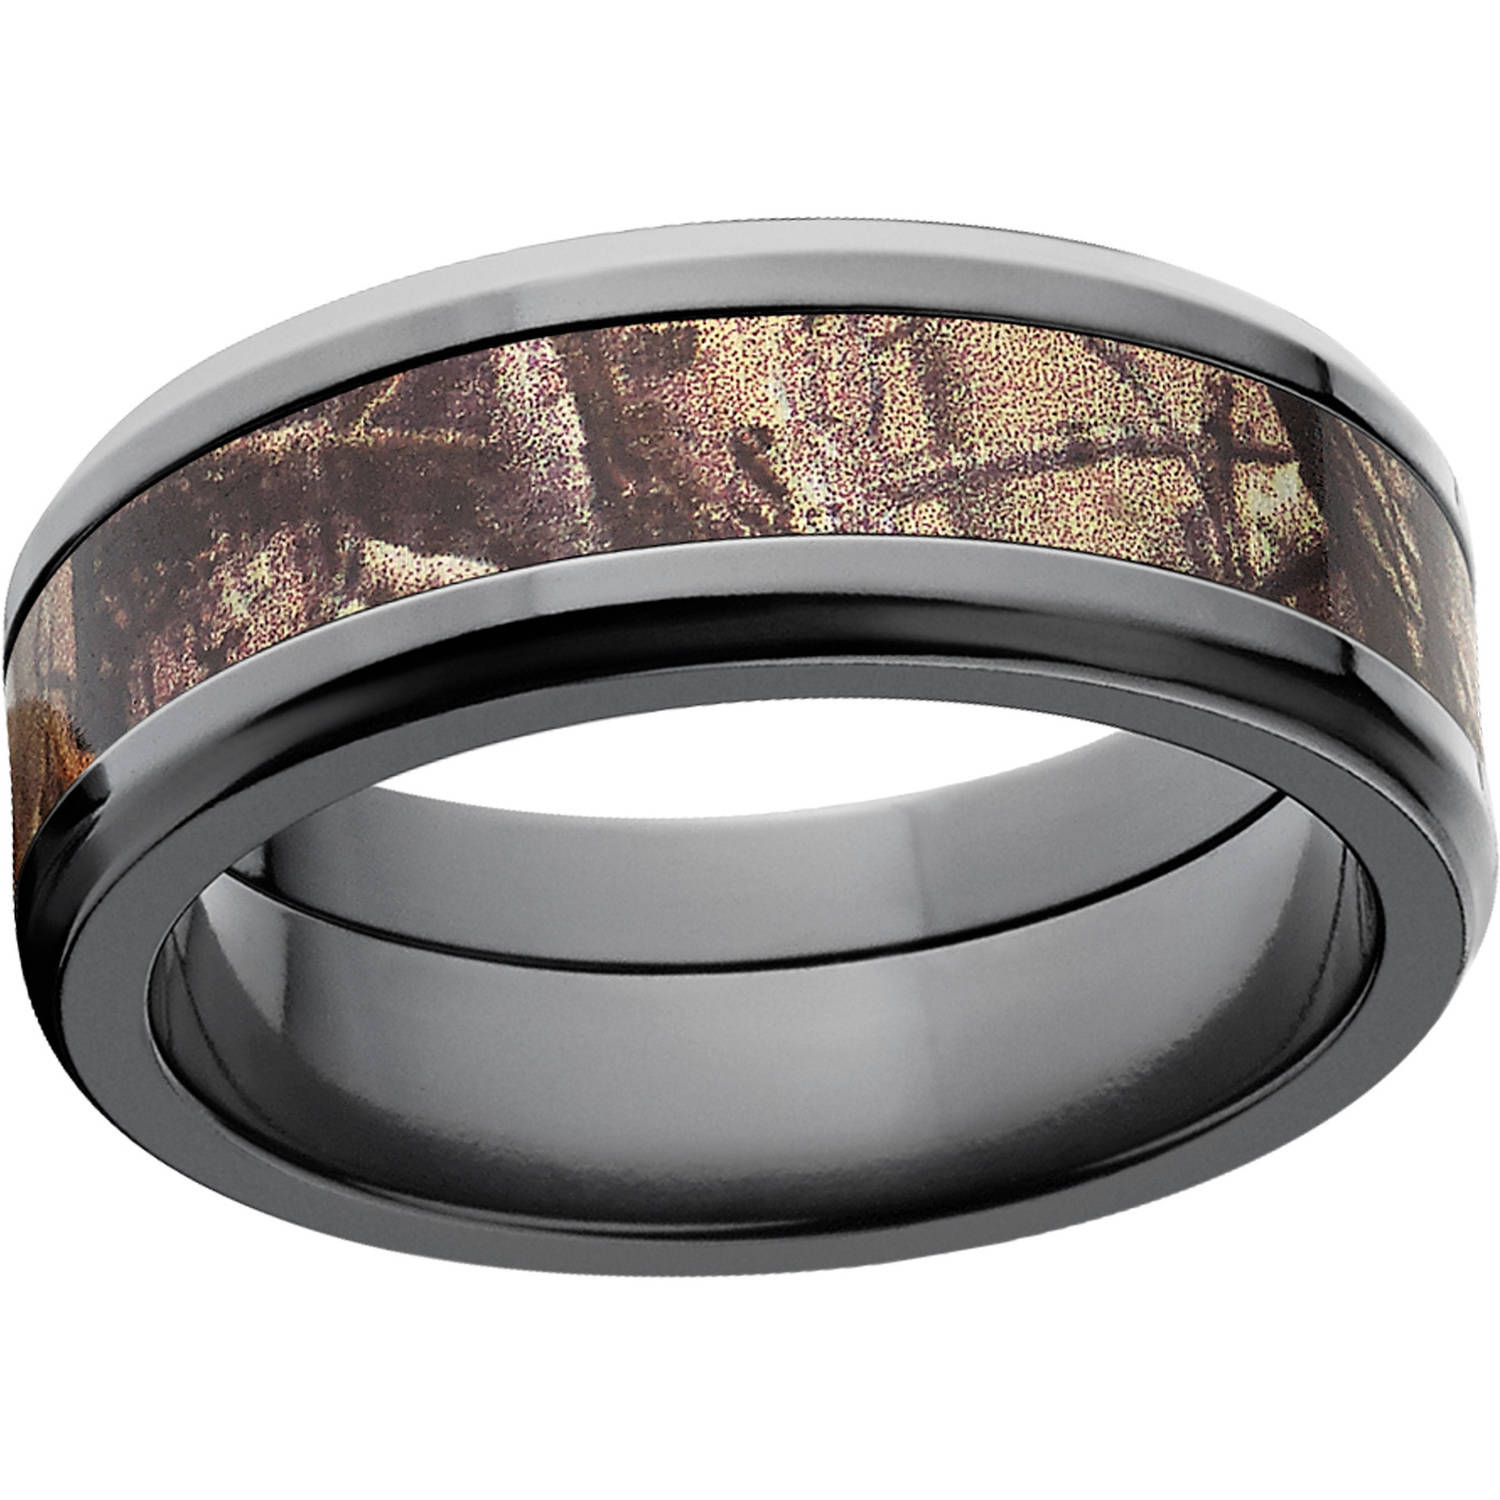 com realtree black men ap camo wedding ip s walmart band rings zirconium